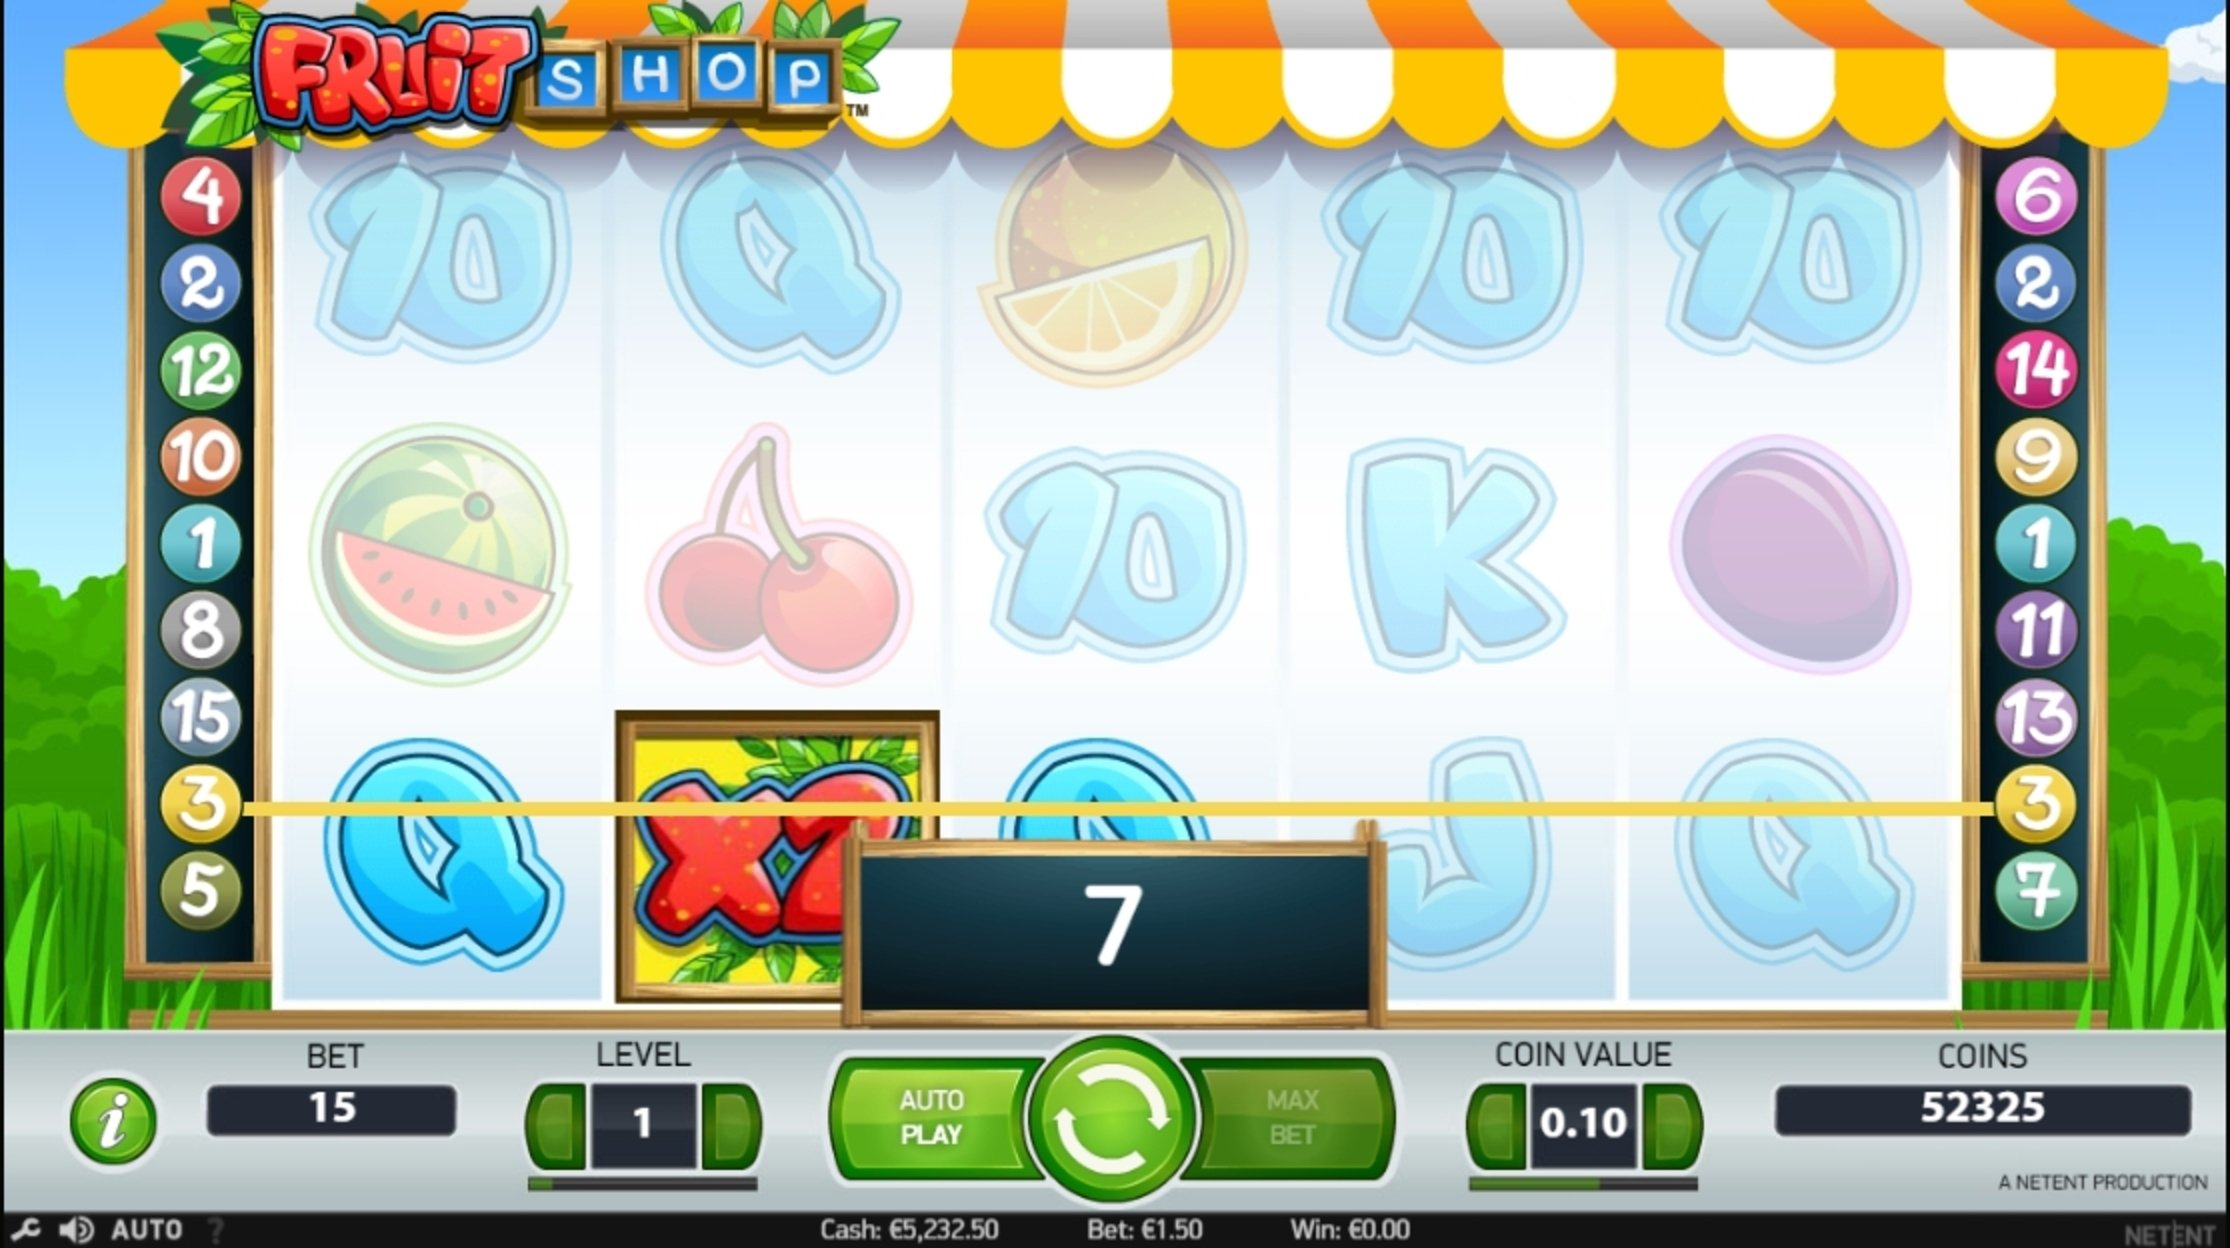 Win Money in Fruit Shop (NetEnt) Free Slot Game by NetEnt